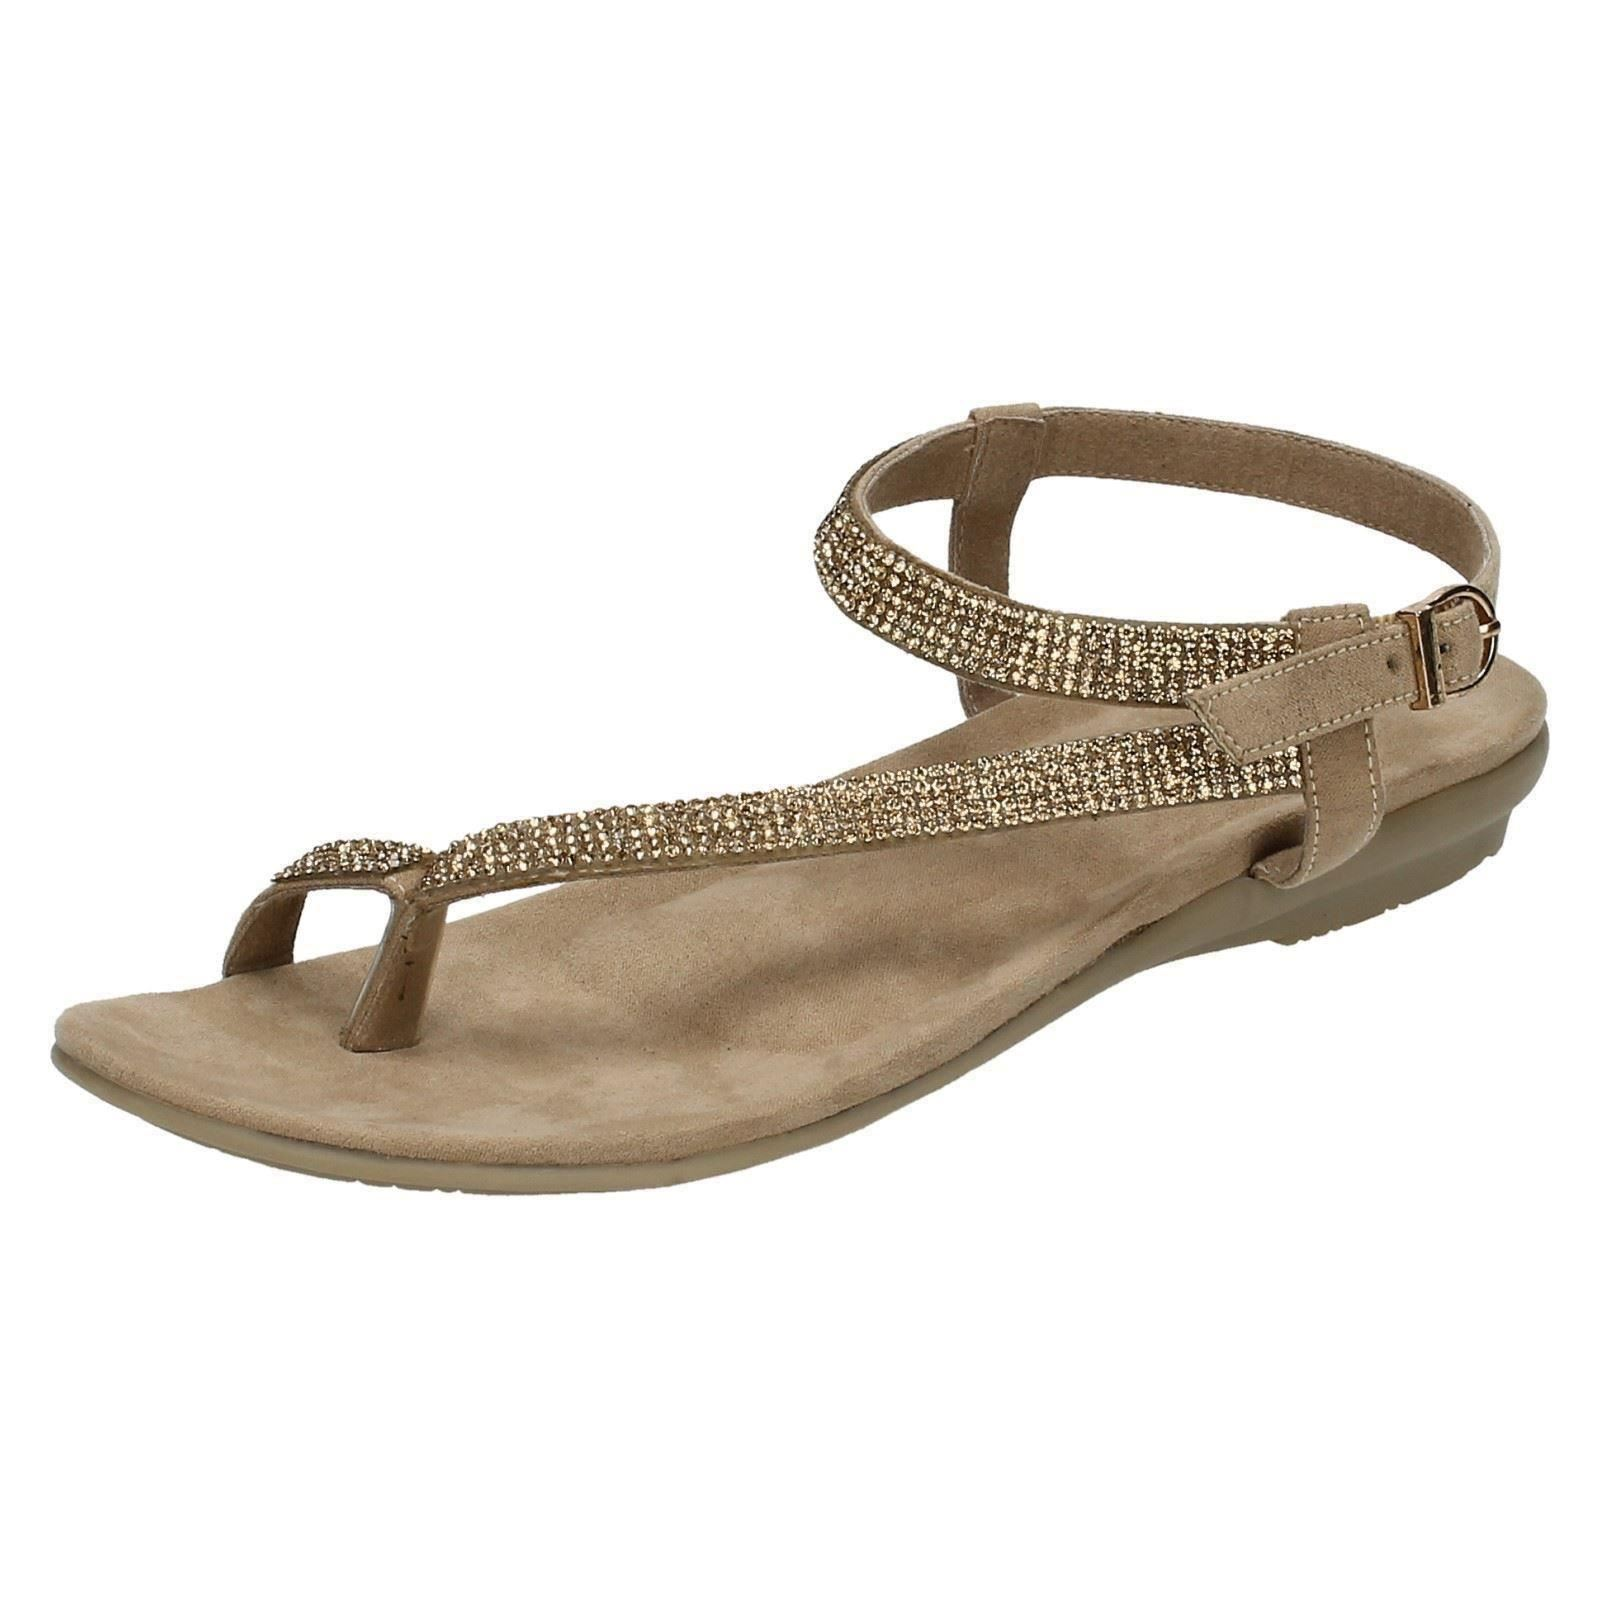 Brilliant The Adorable And Chic Koolaburra Riva Toe Loop Leather Sandal Will